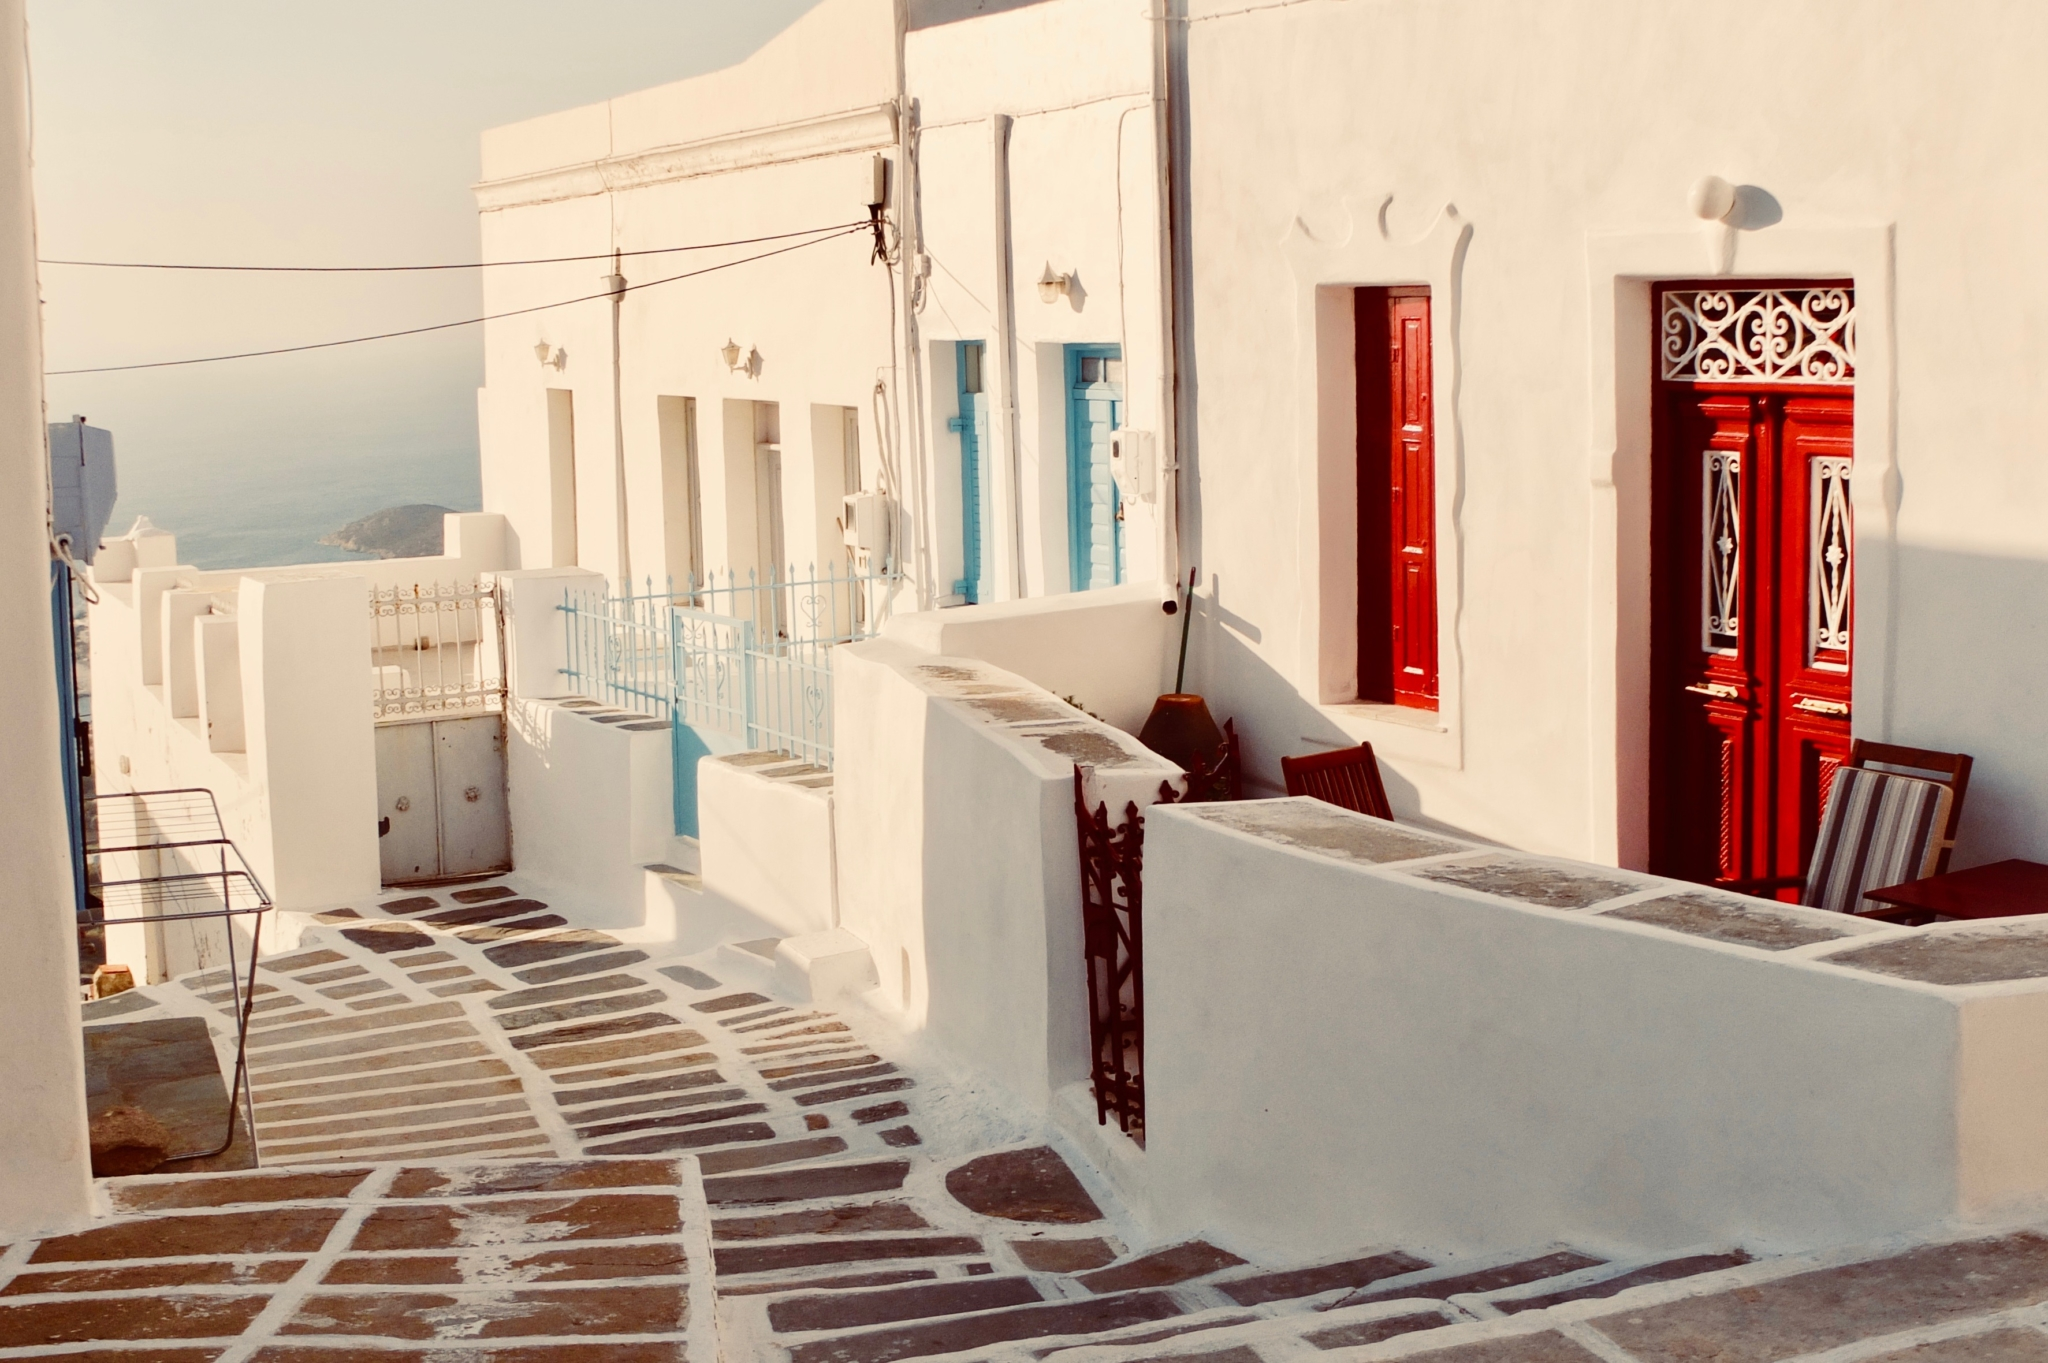 greece, greek islands, mediterranean islands, red doors, dreamy, paradise, holiday, mediterranean holiday